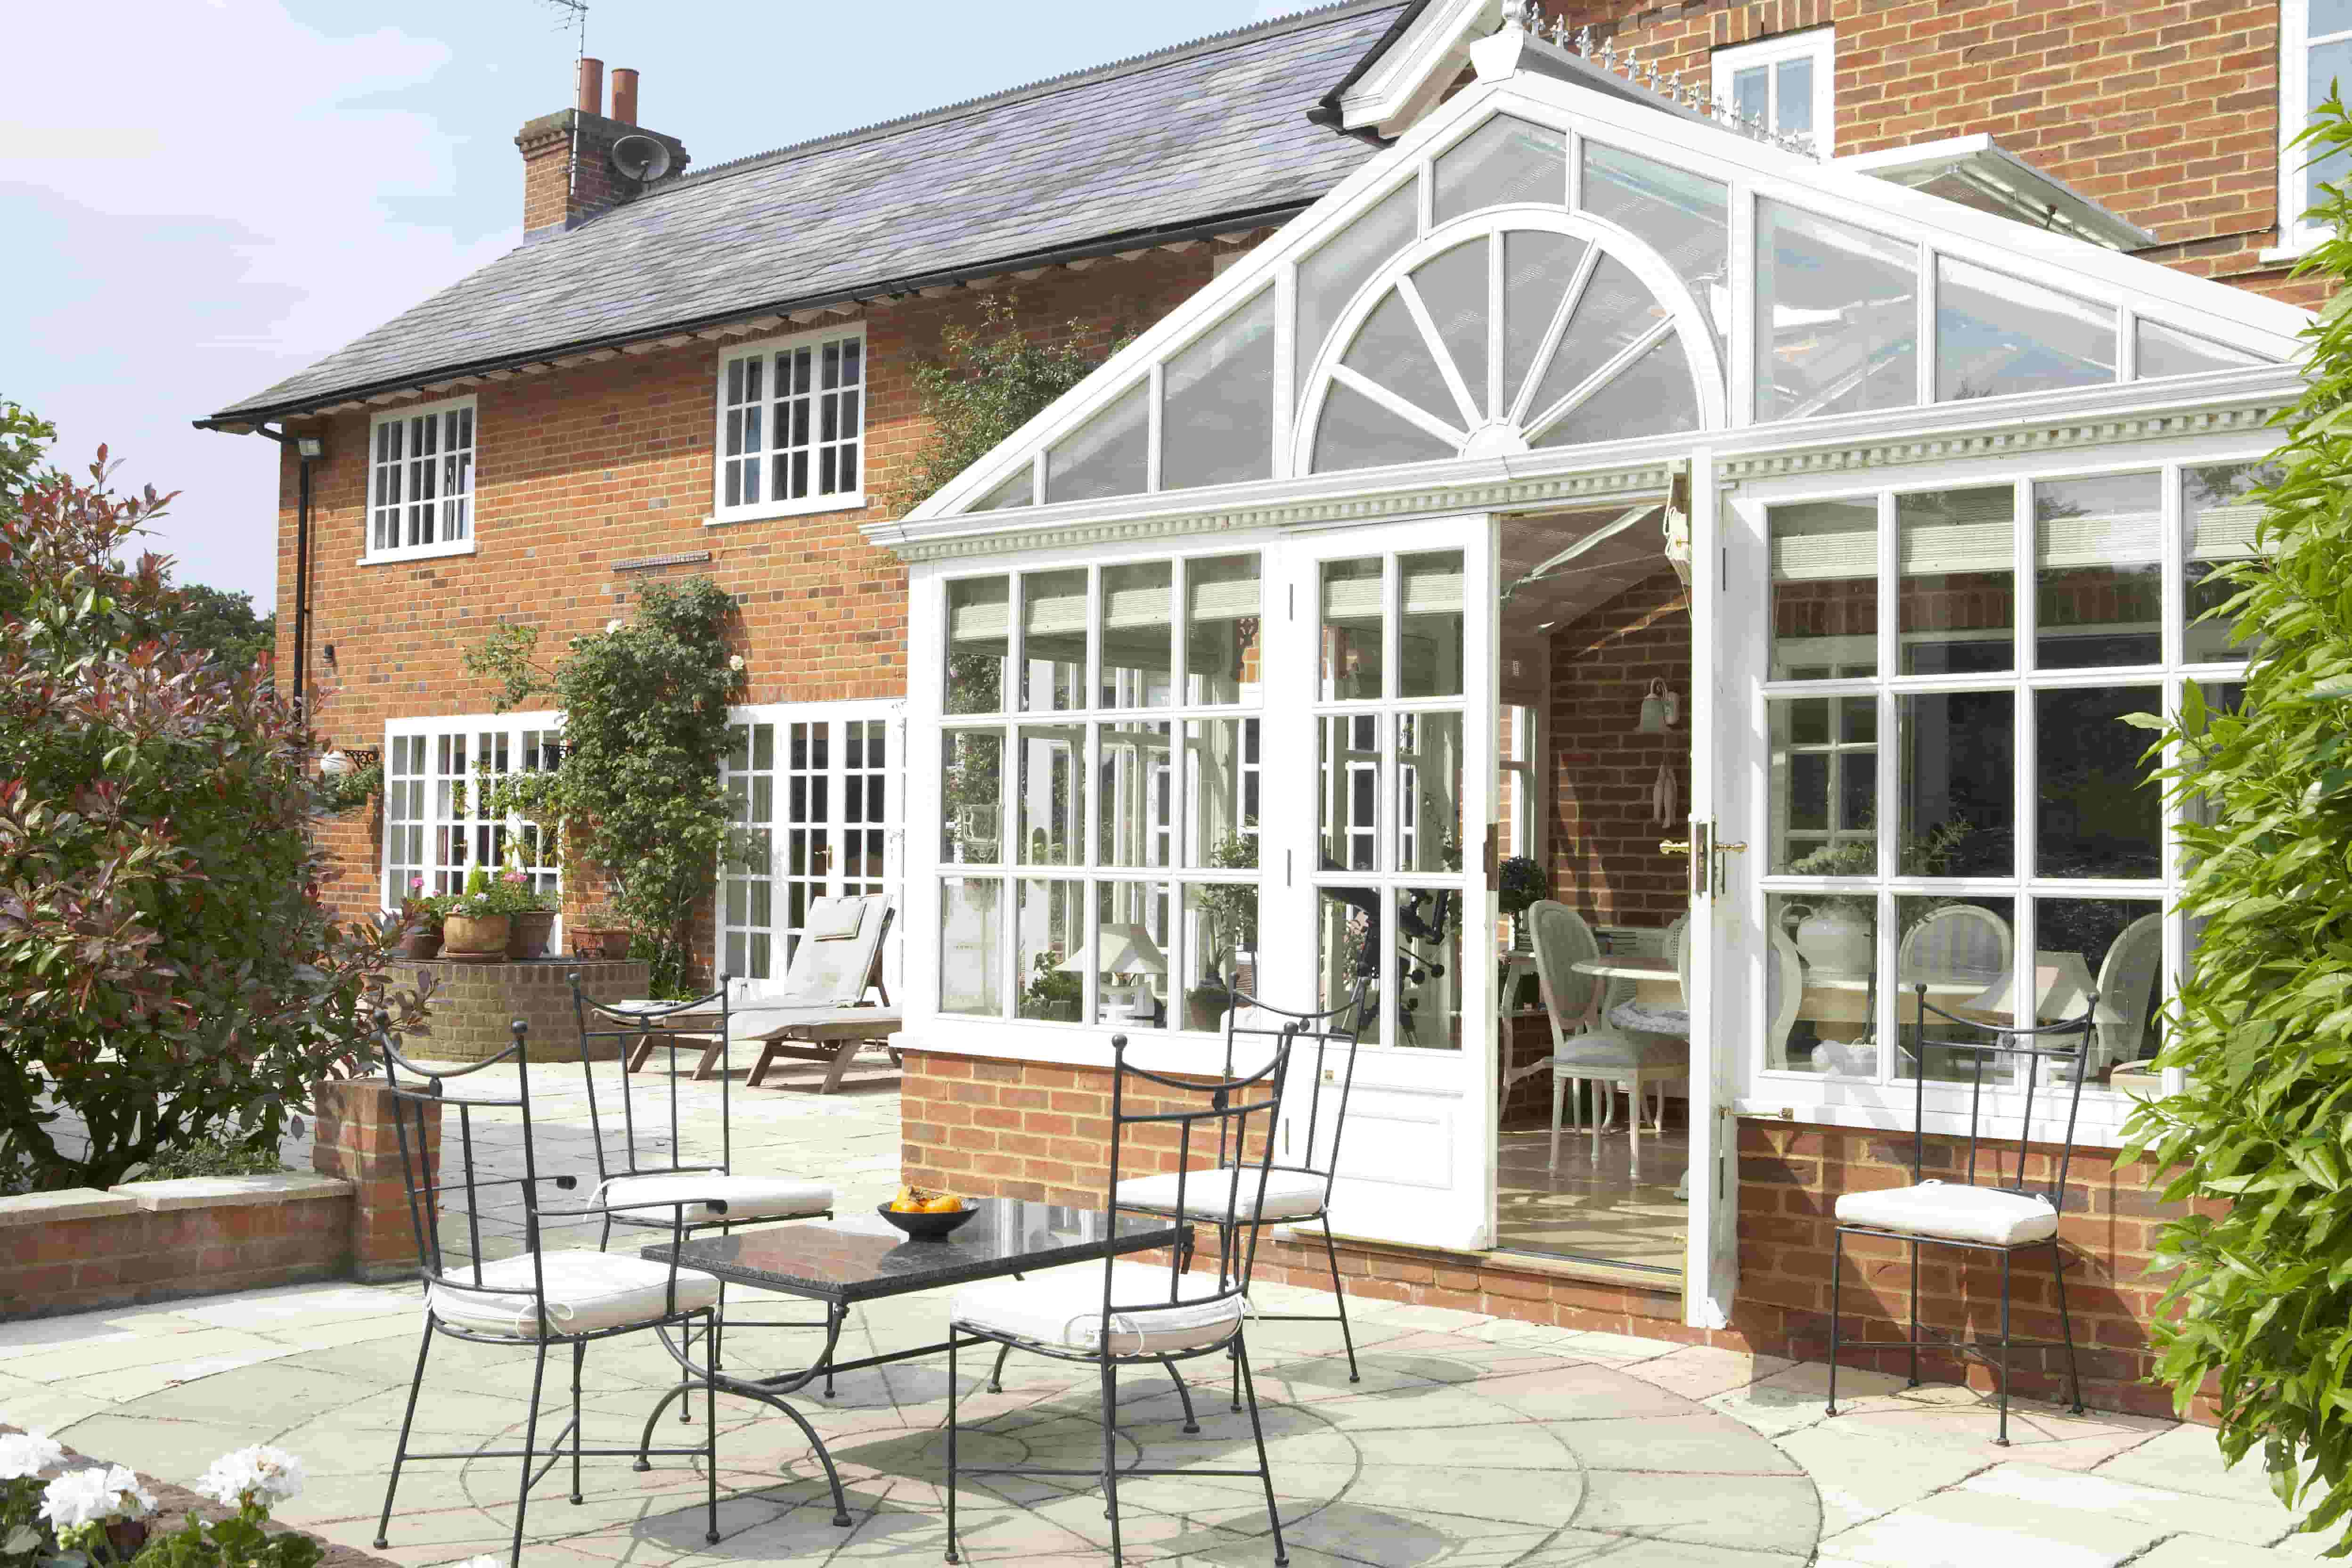 A Global conservatory roof